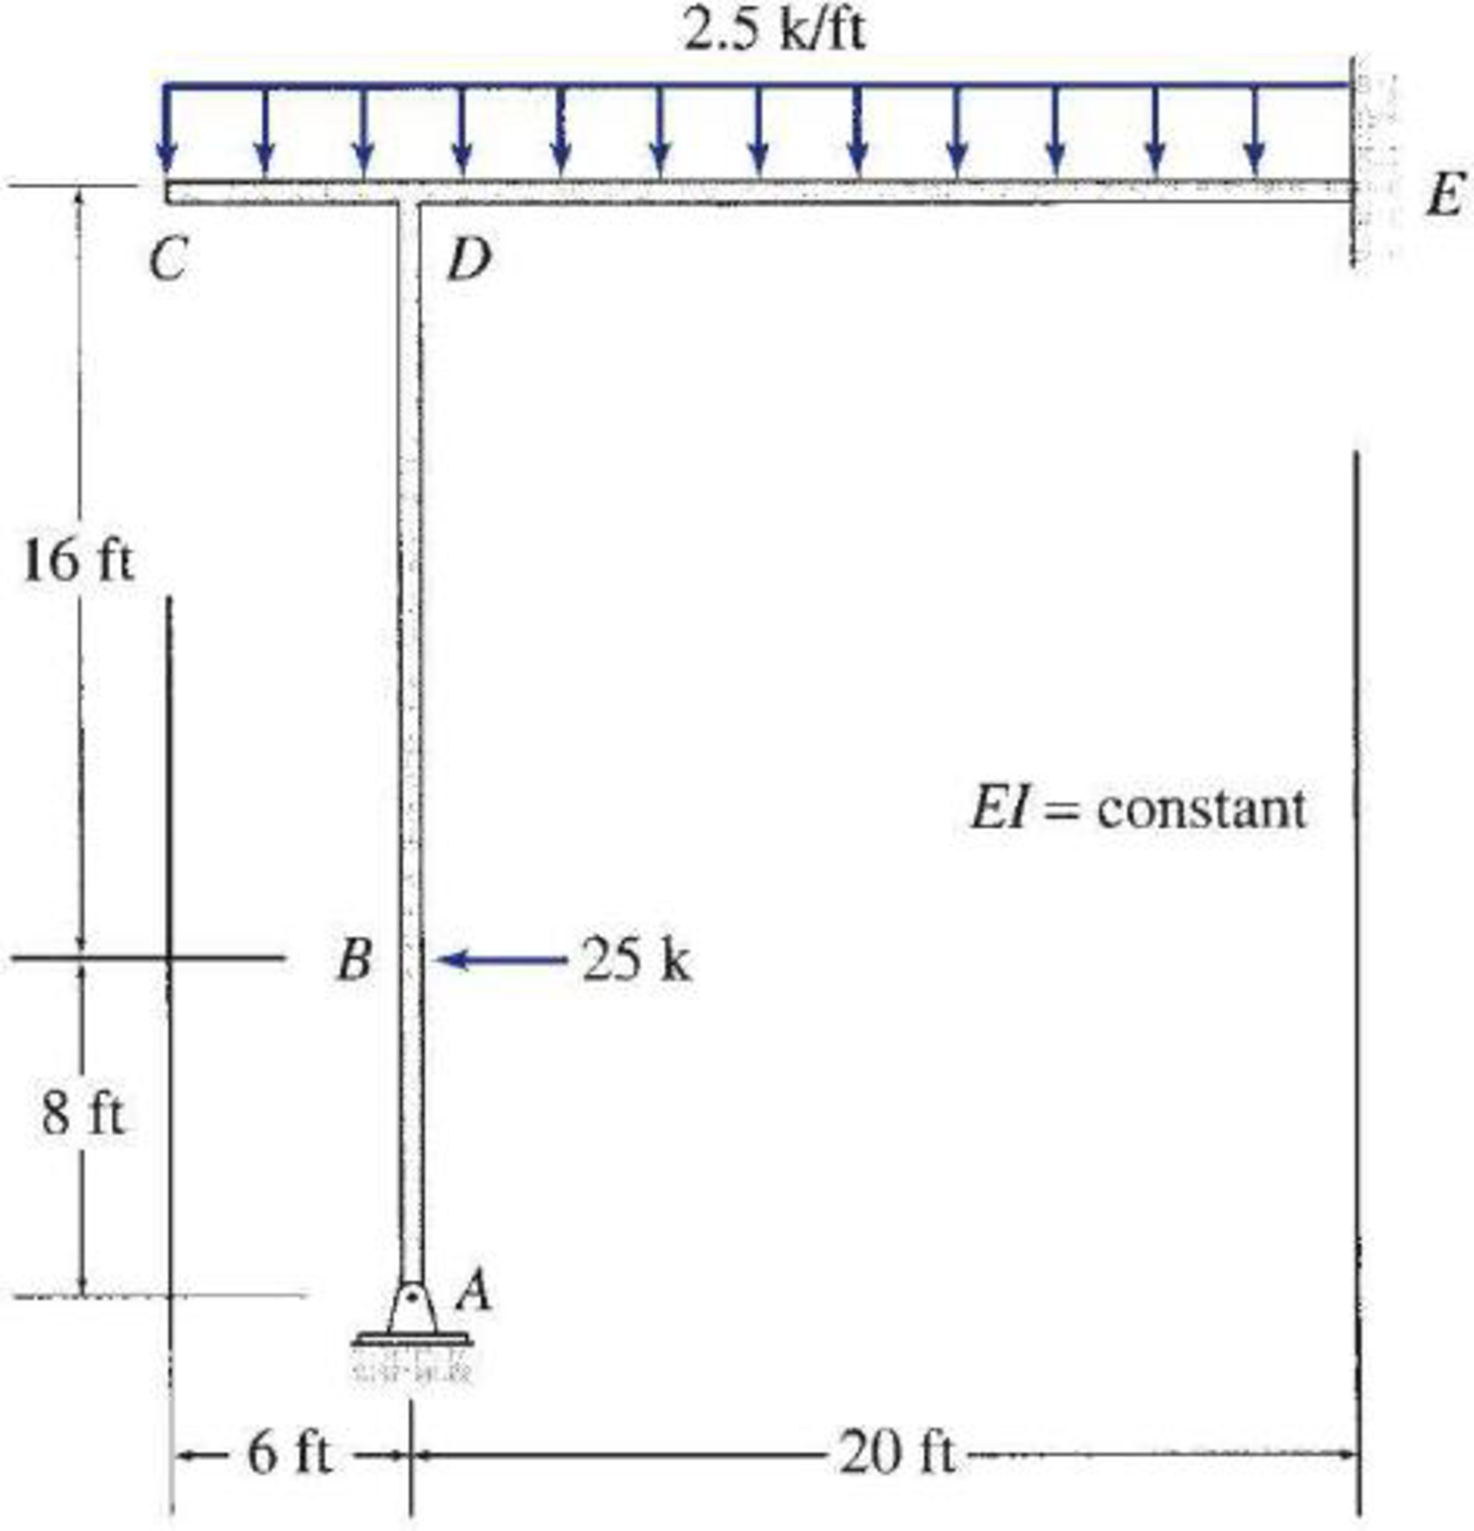 Chapter 13, Problem 43P, 13.37 through 13.45 Determine the reactions and draw the shear and bending moment diagrams for the